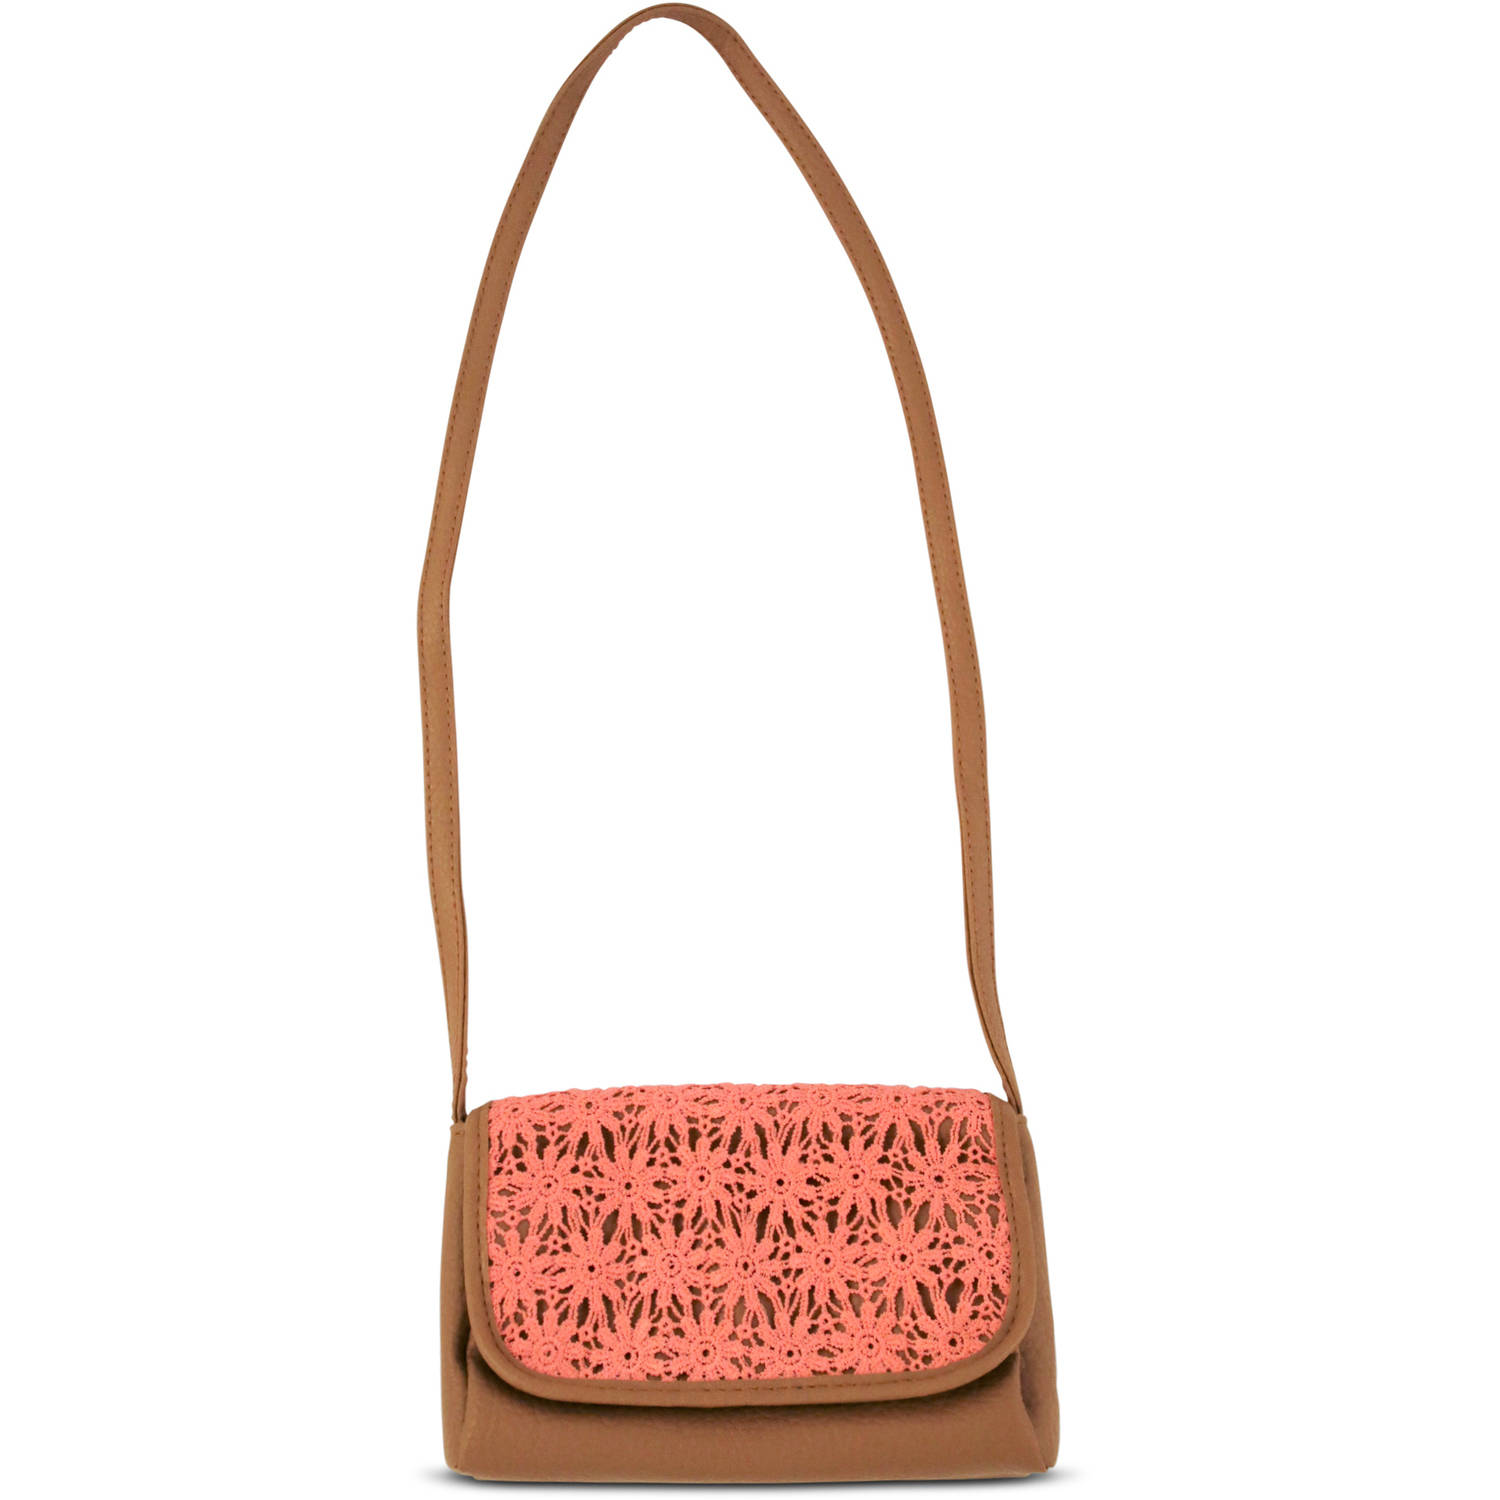 Image of ABG Accessories Girls' Crossbody Bag